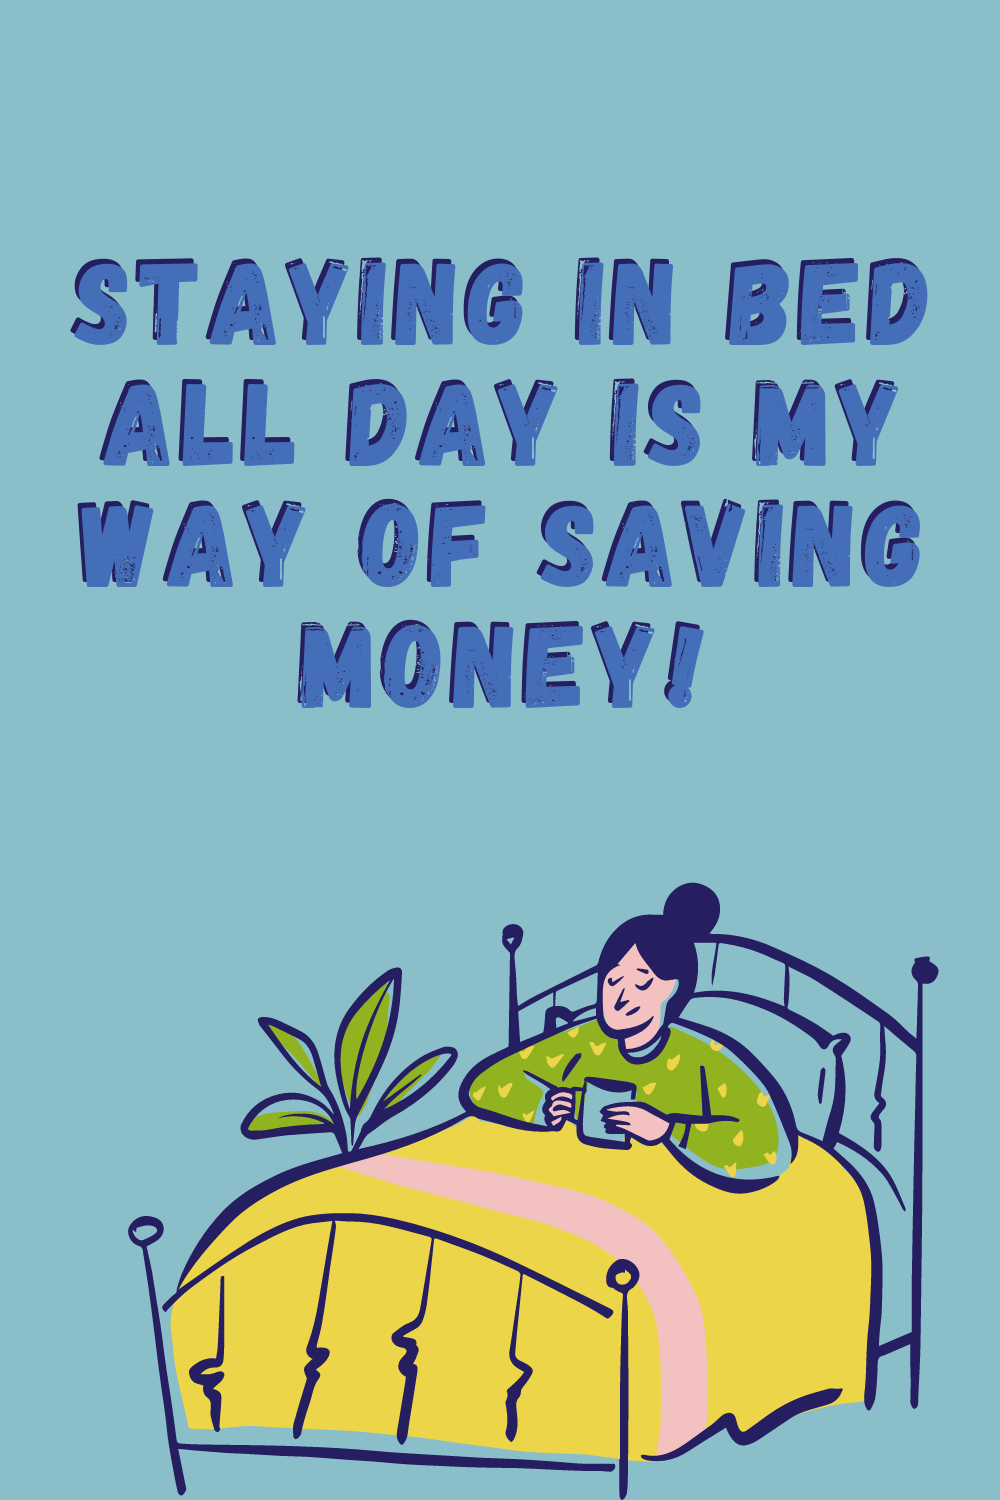 Funny money quotes for saving money